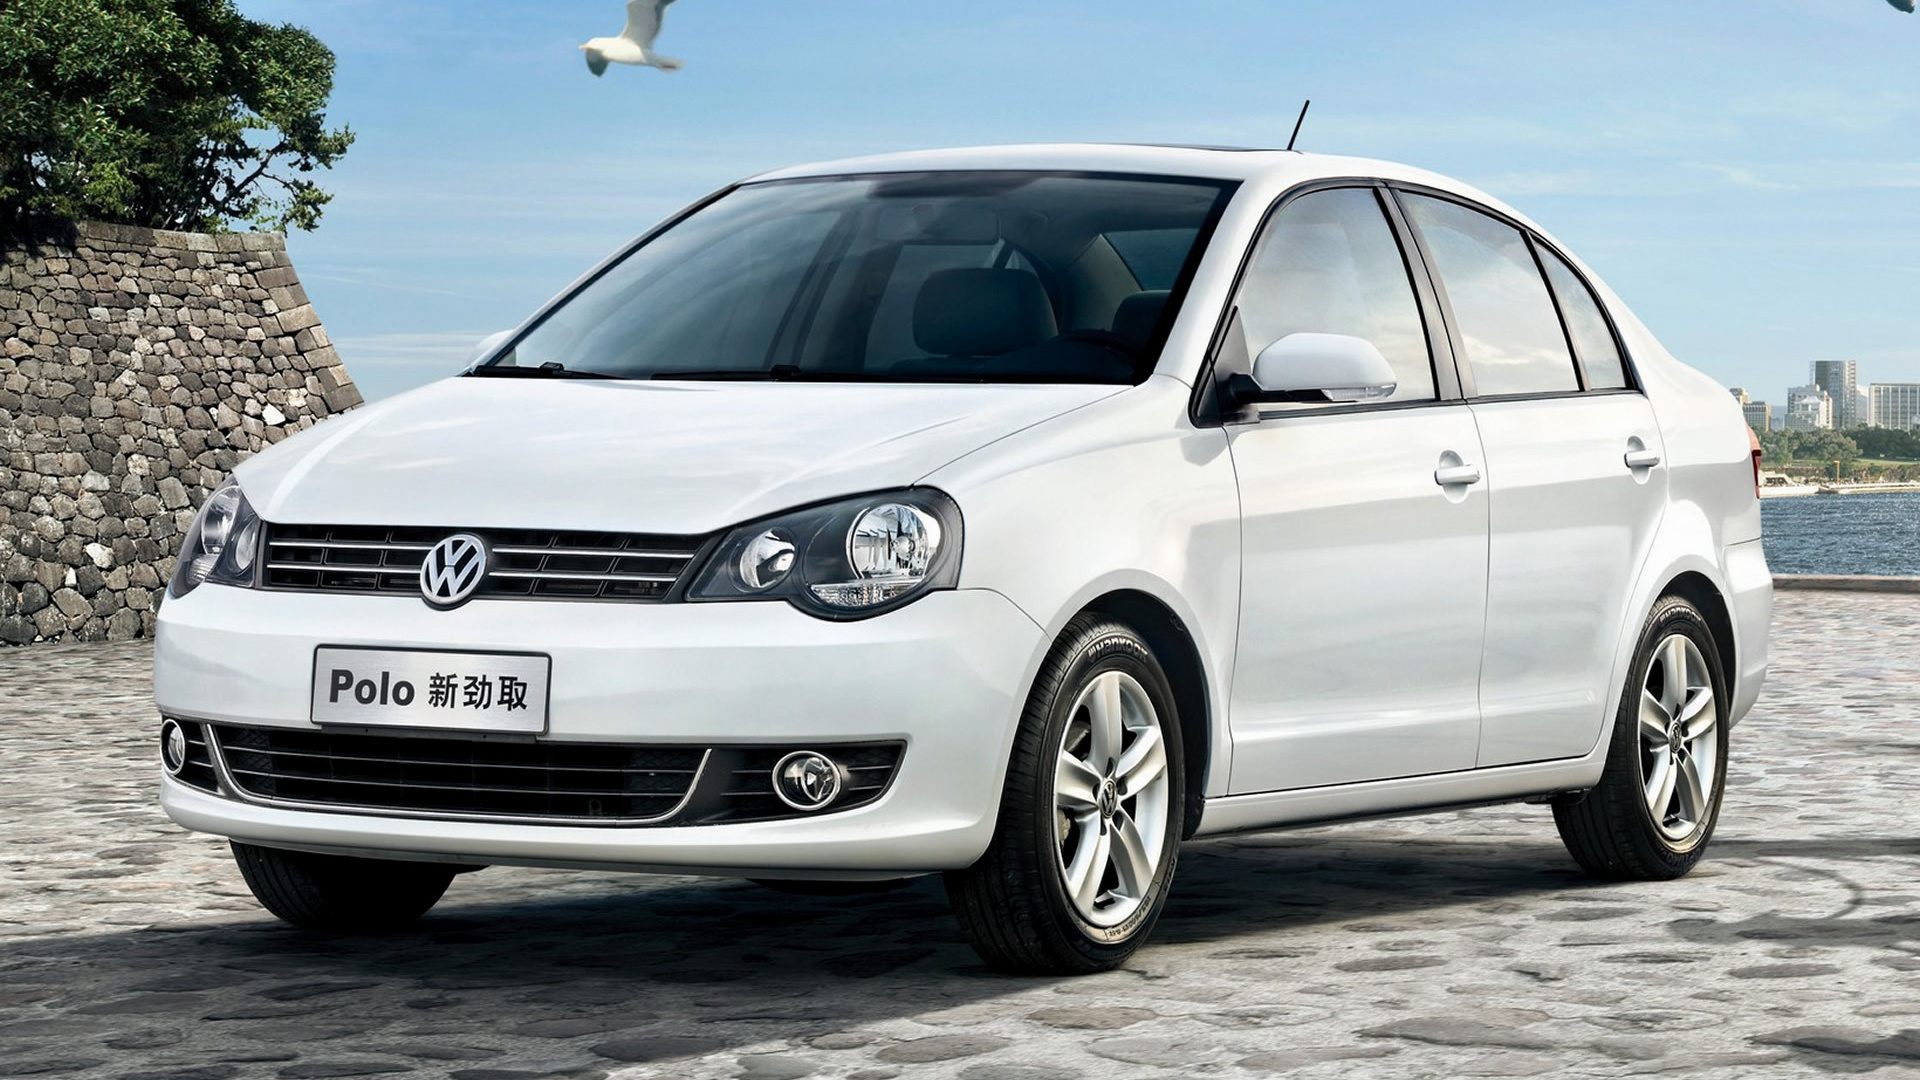 Ed Martin Gmc >> 2011 Volkswagen Polo Sedan (CN) - Wallpapers and HD Images ...